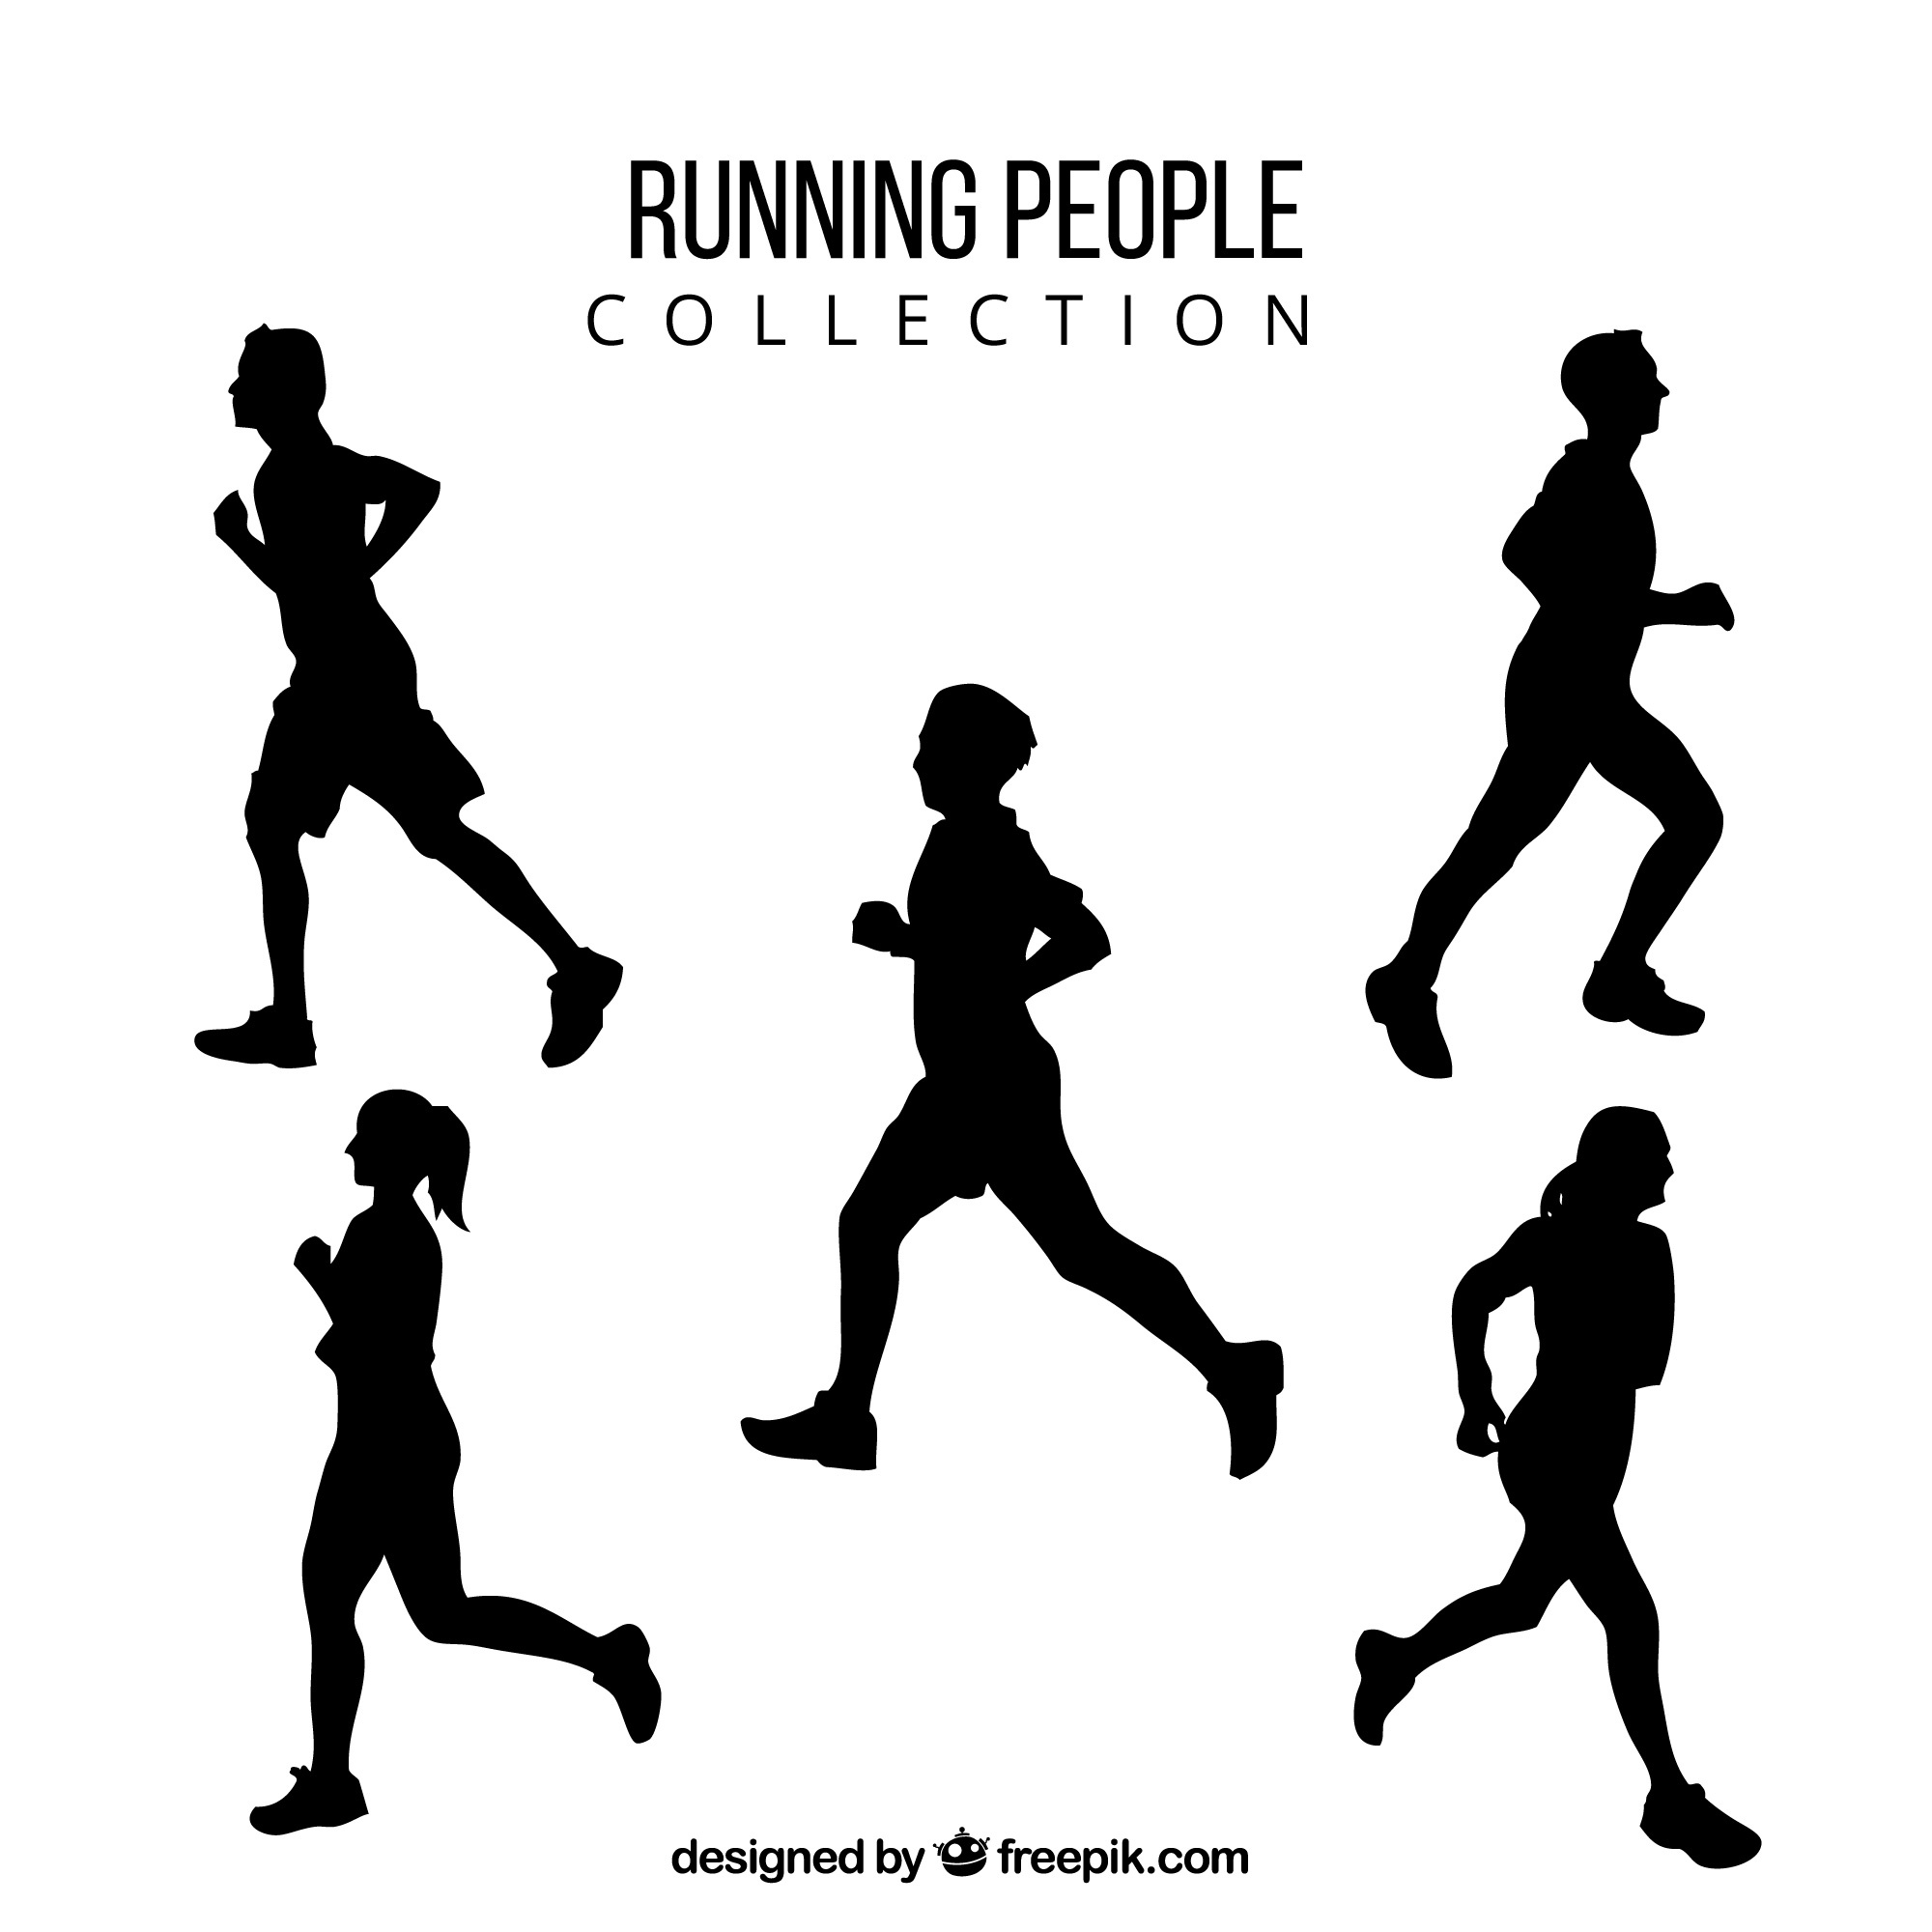 Silhouettes of men and women running